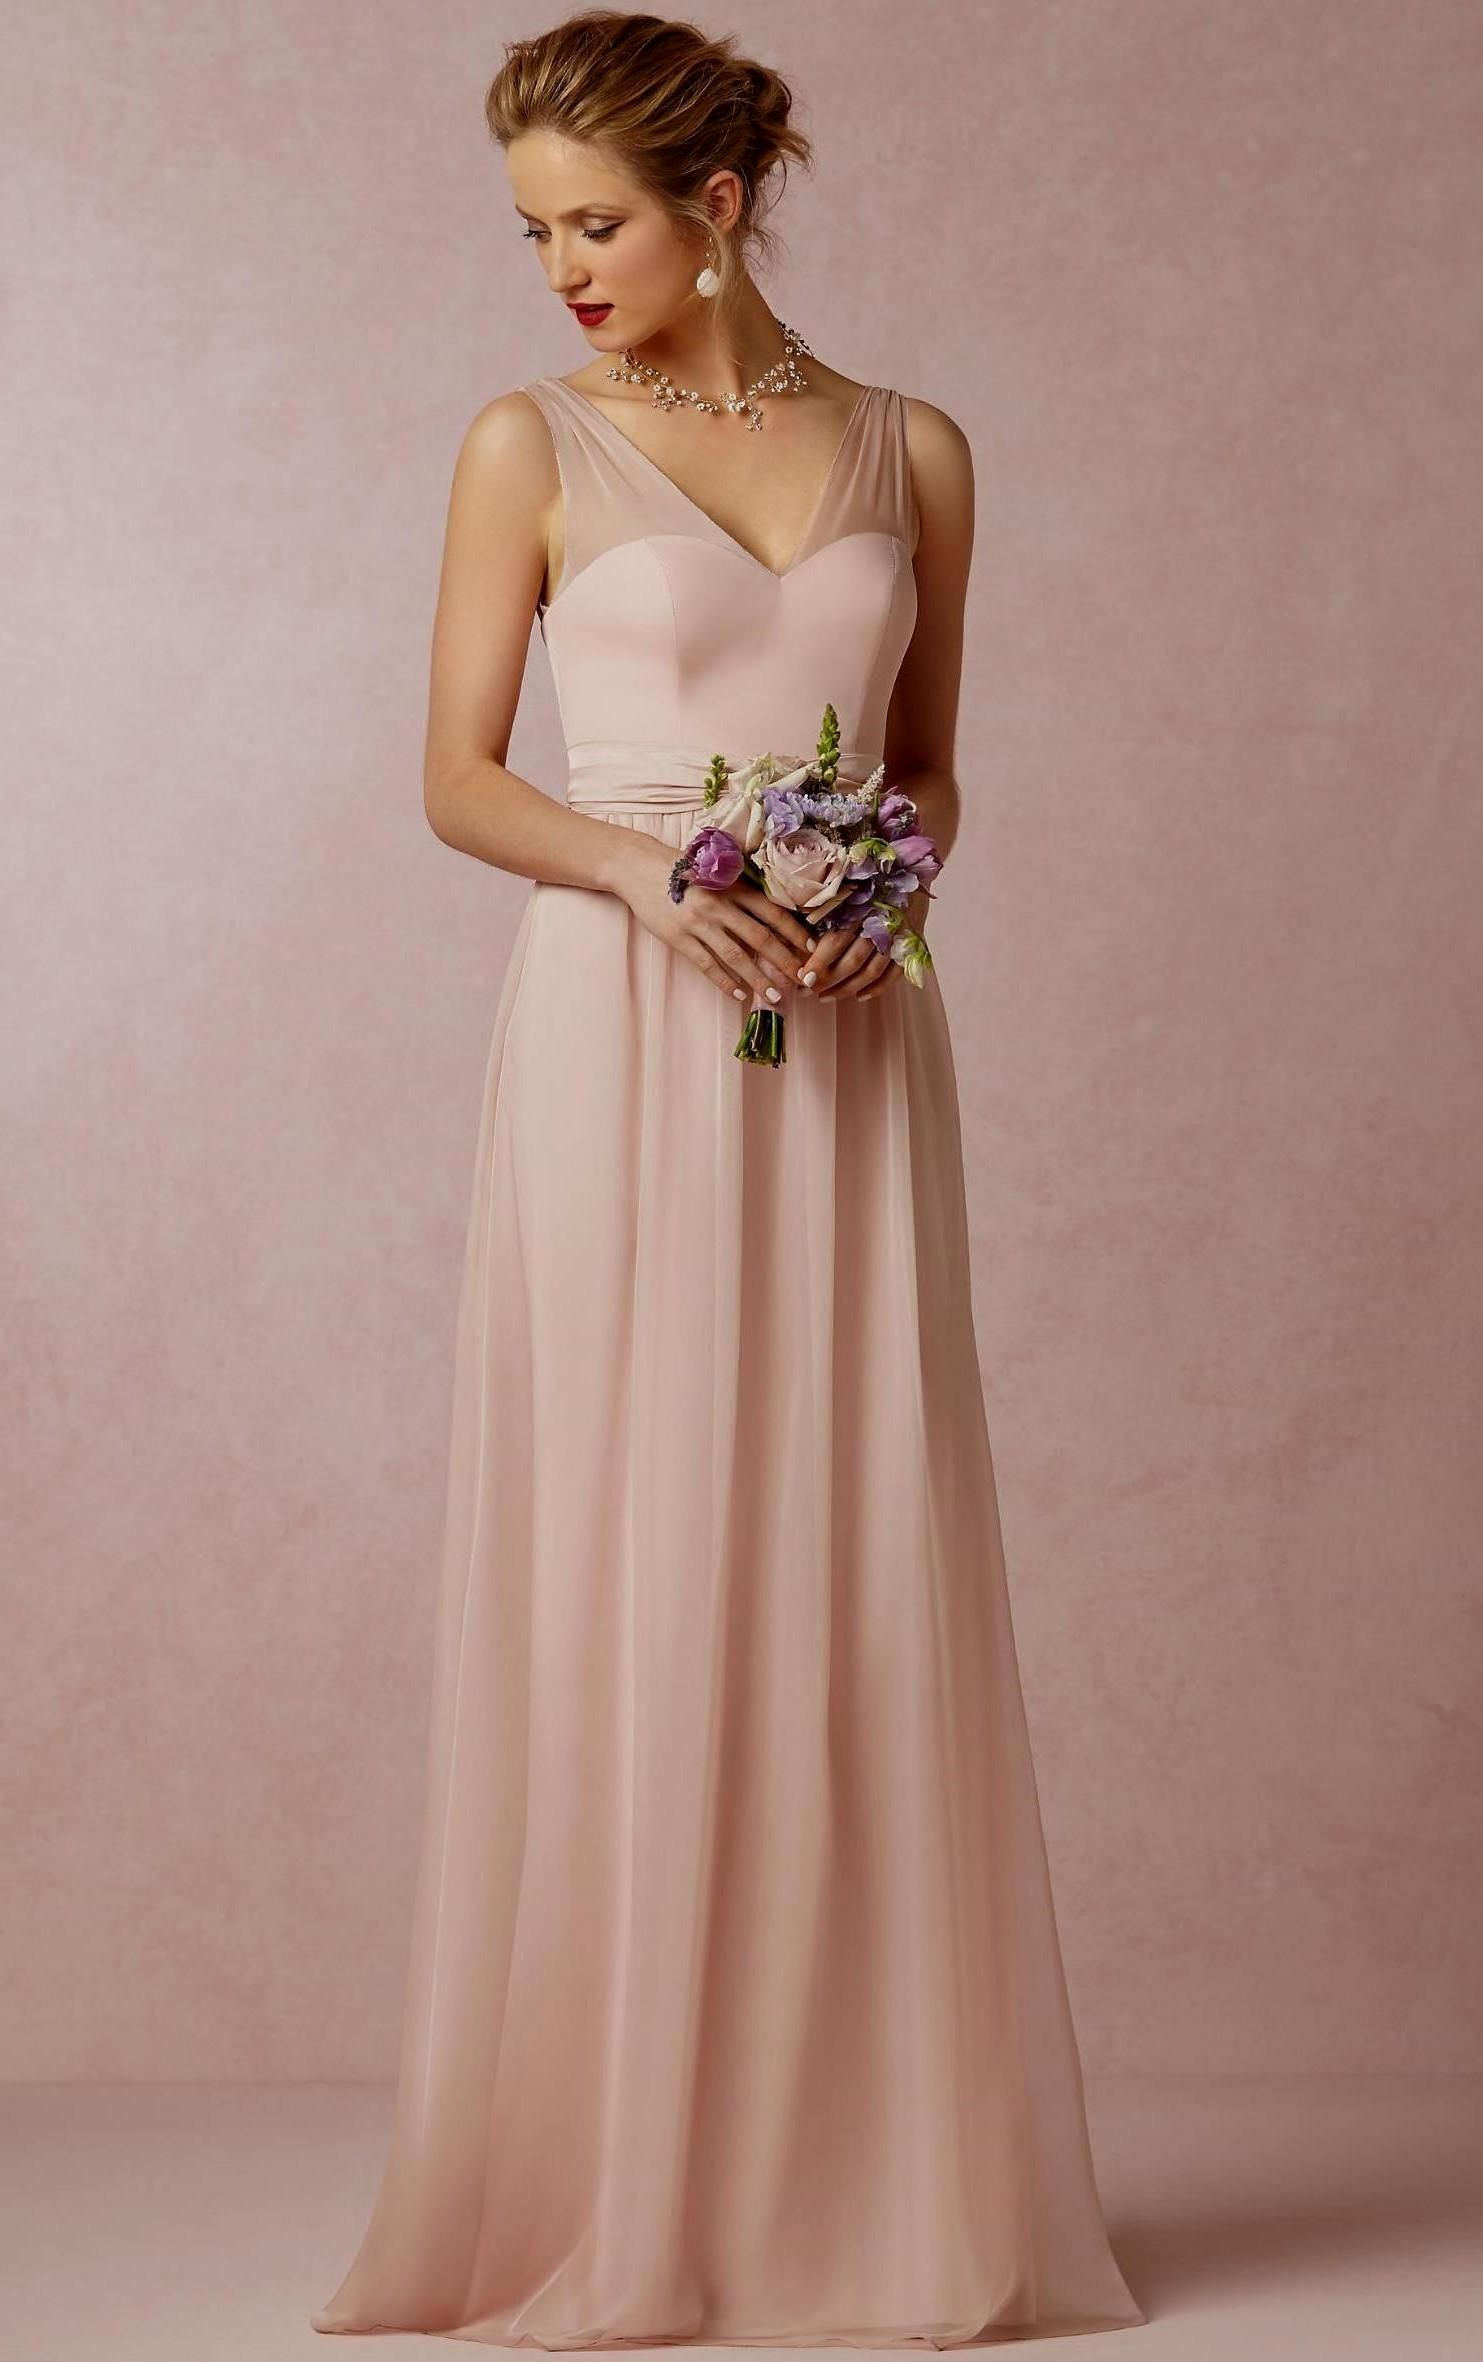 rose gold bridesmaid dresses uk - idmedia.biz | Bridesmaid | Pinterest